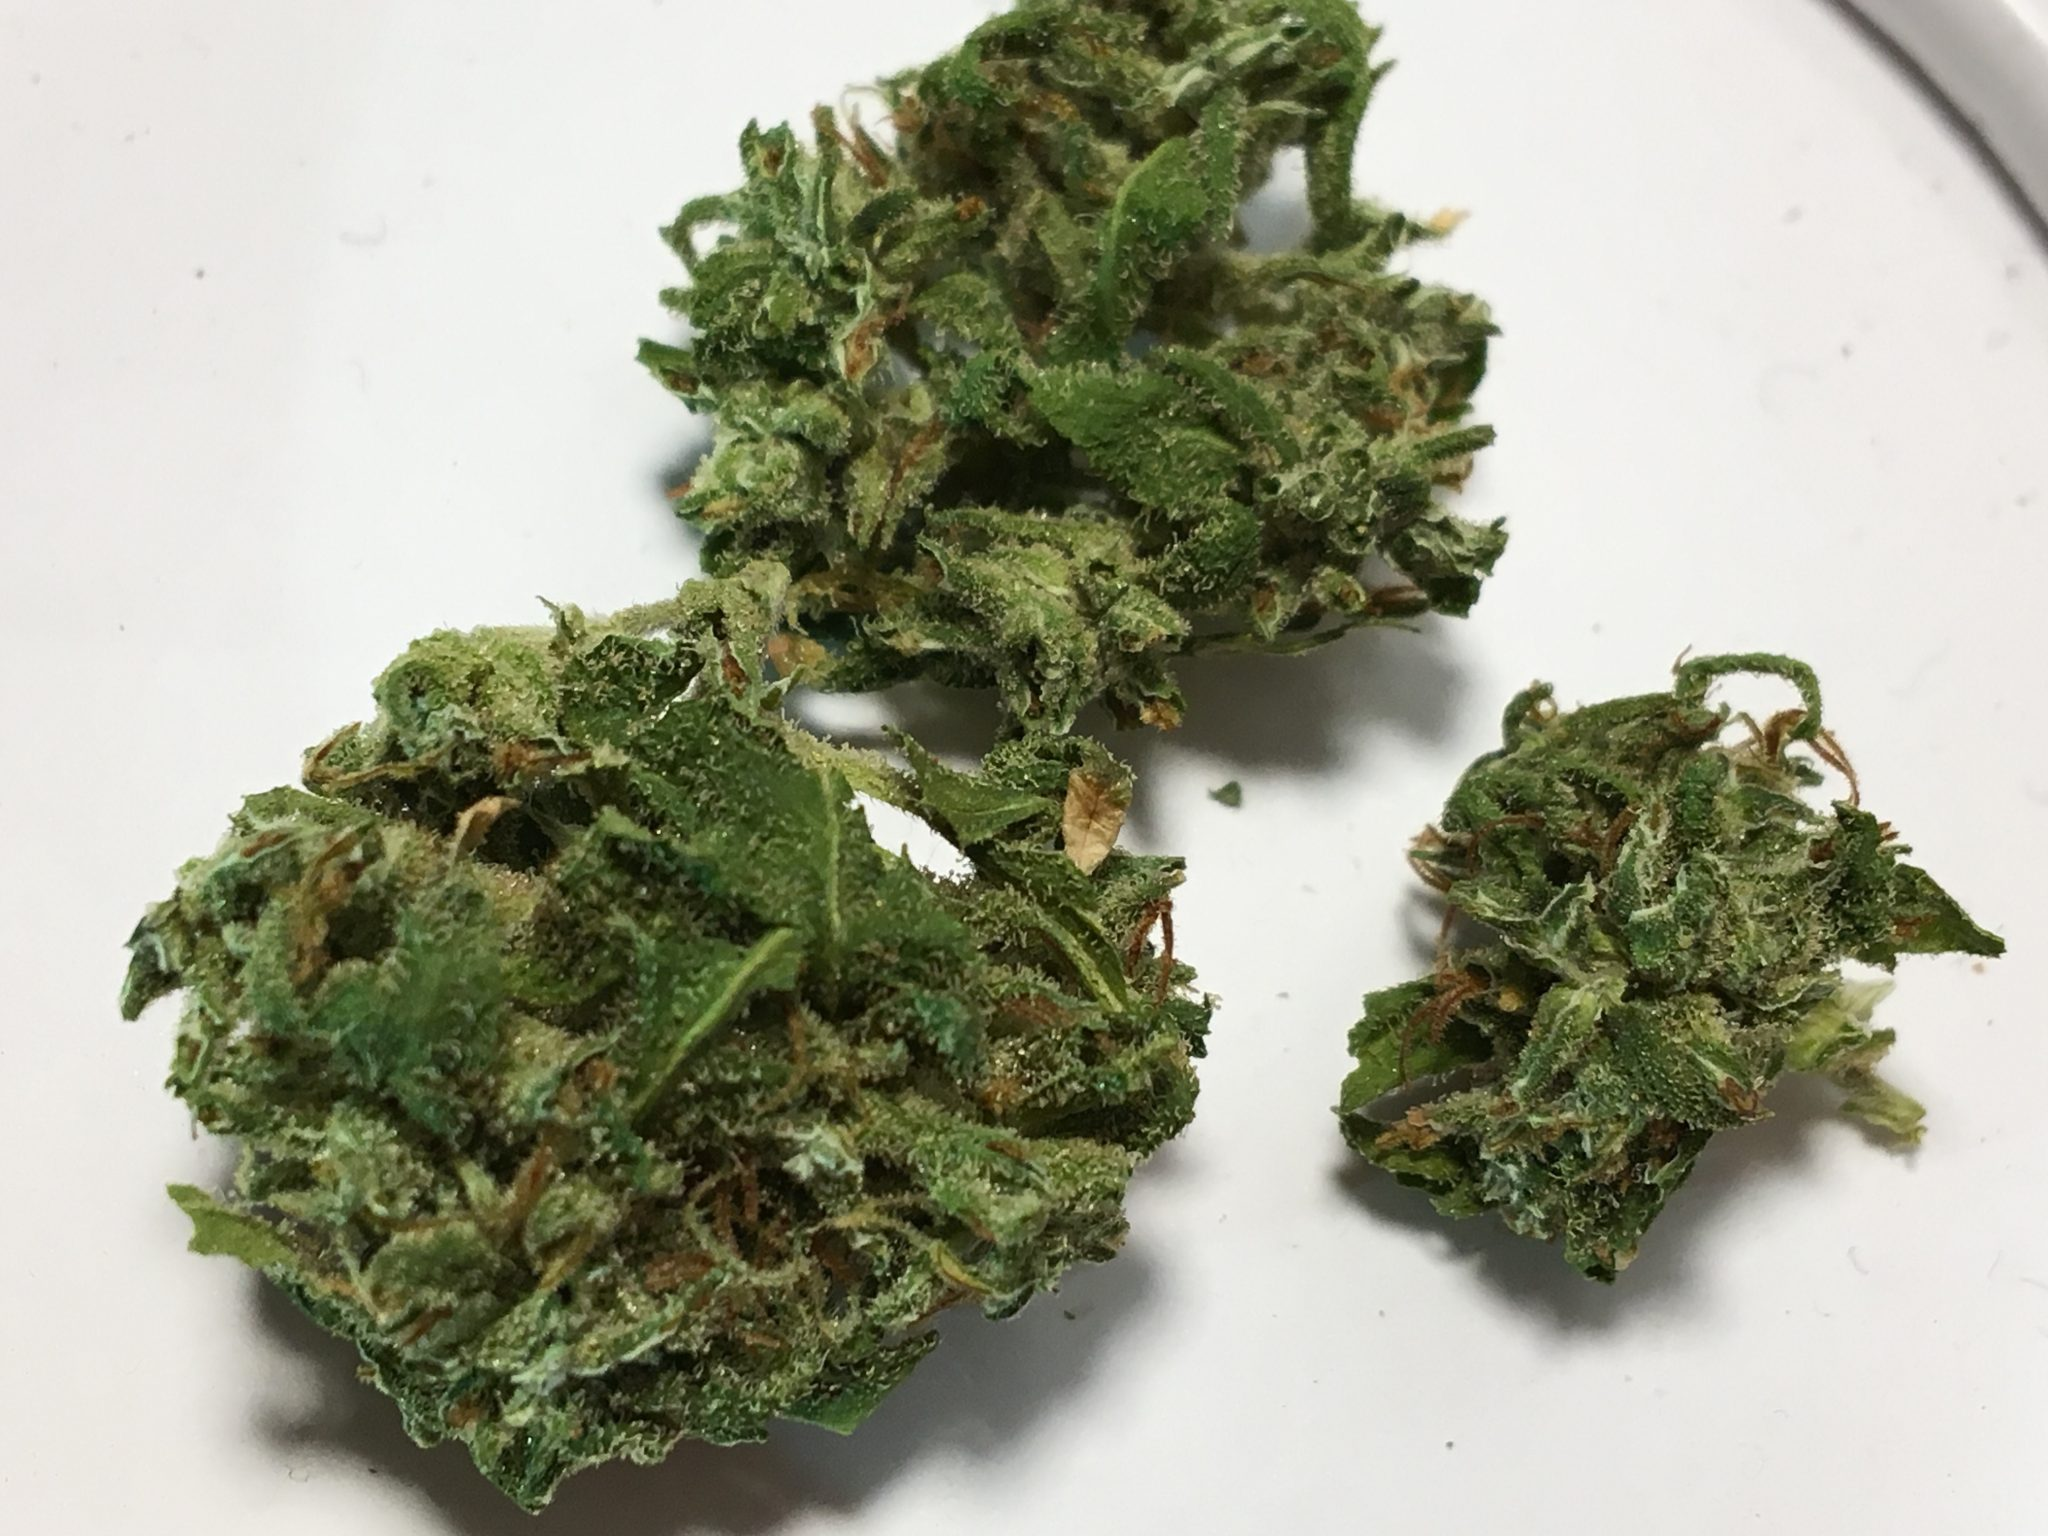 Upclose shot of cannabis from the Trois et Demi review